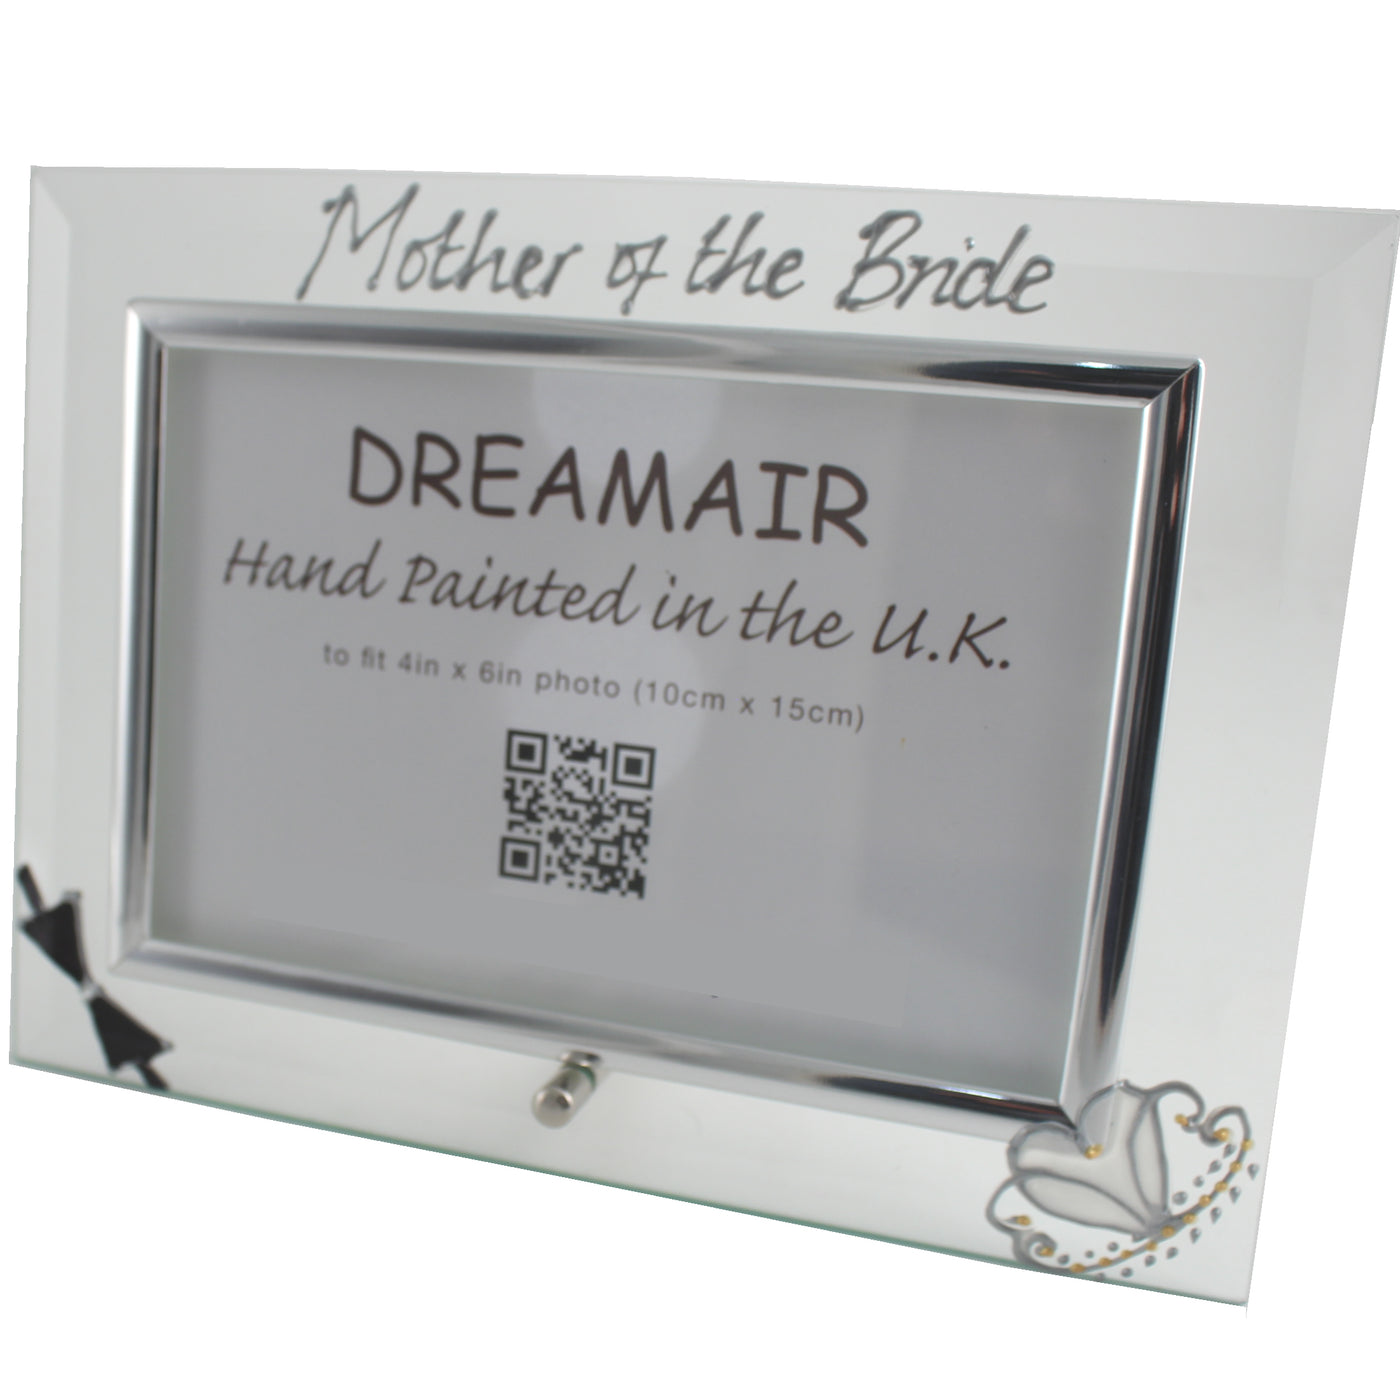 Mother Of The Bride Gift Photo Frame Landscape Bow Tiara